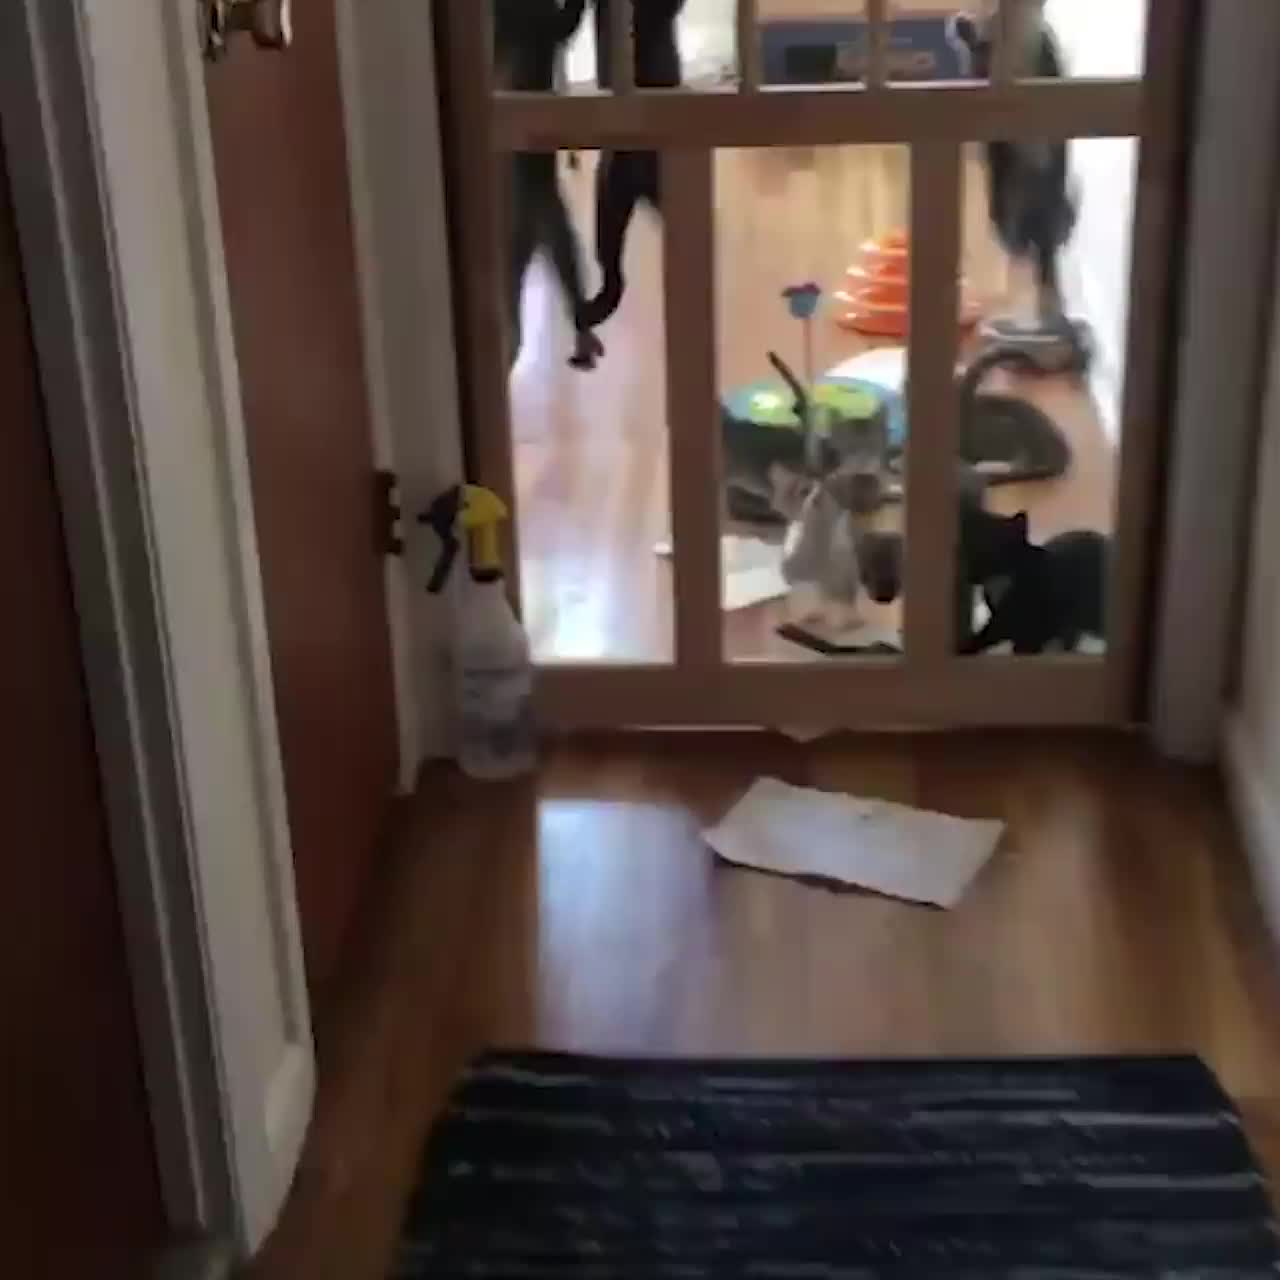 Kittens Climbing Up Door In The Morning GIFs